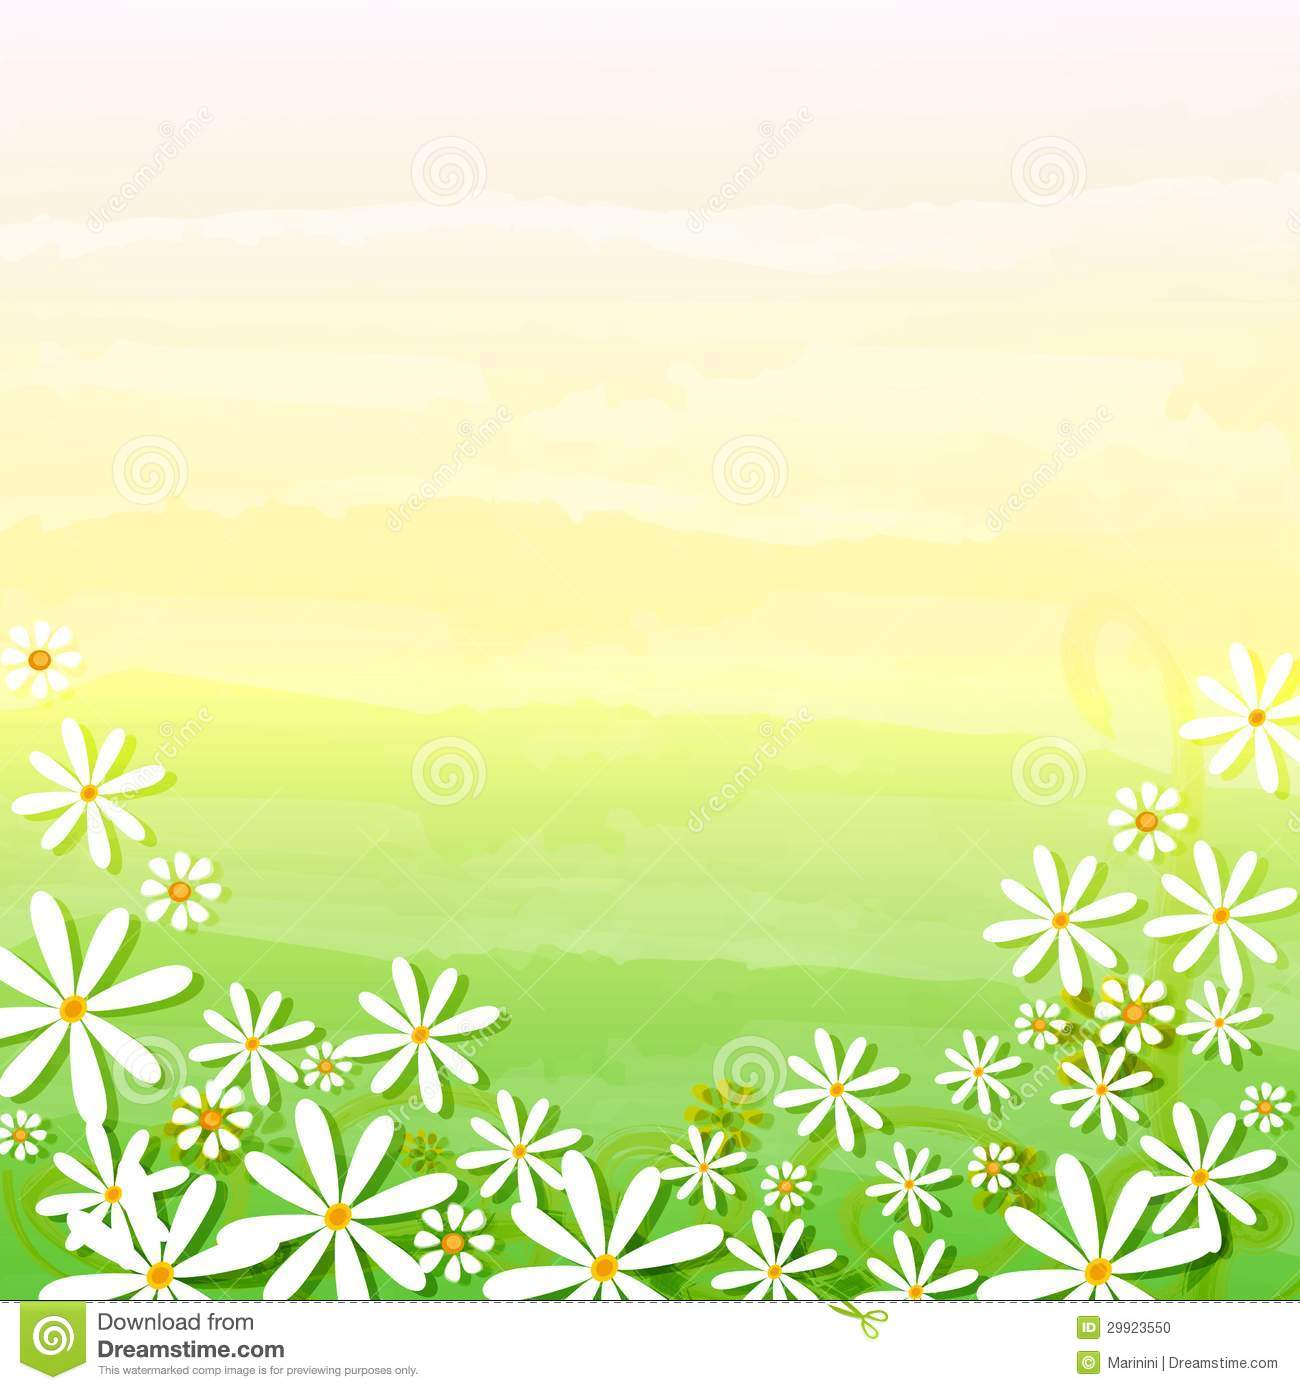 Spring Flowers In Beige Green Background Stock Photo ...